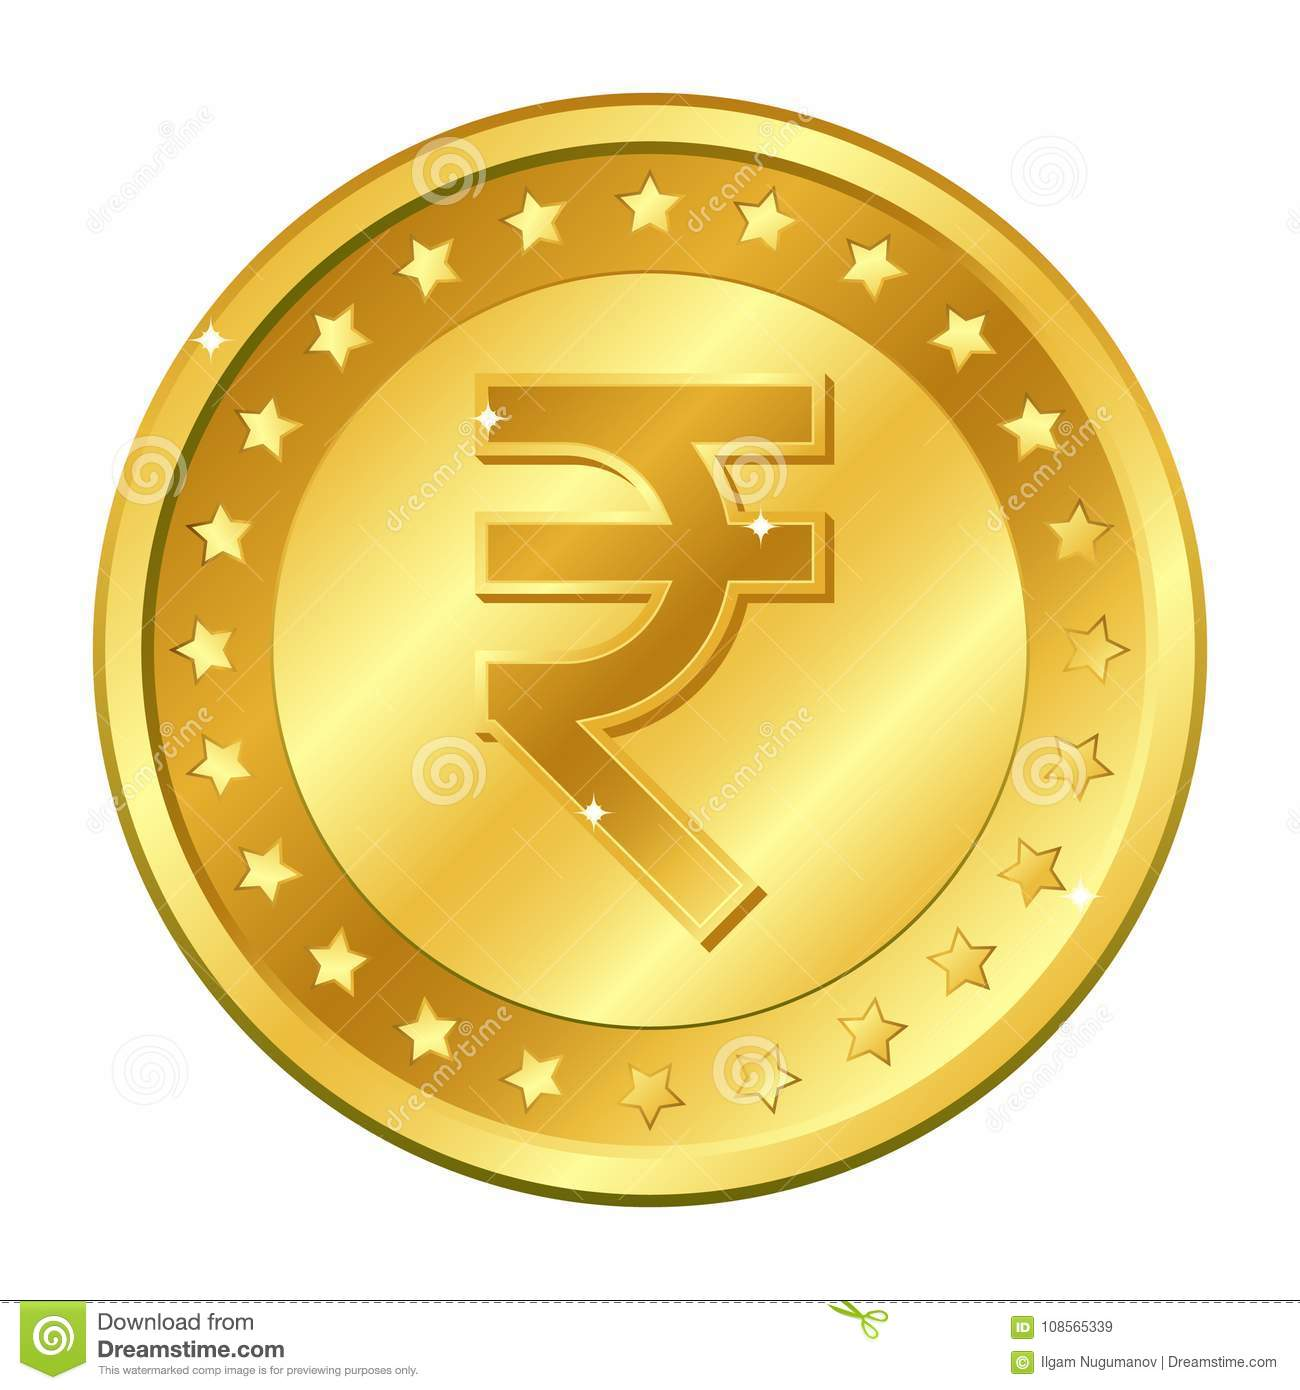 Rupee currency gold coin with stars. Indian currency. Vector illustration isolated on white background. Editable elements and glar